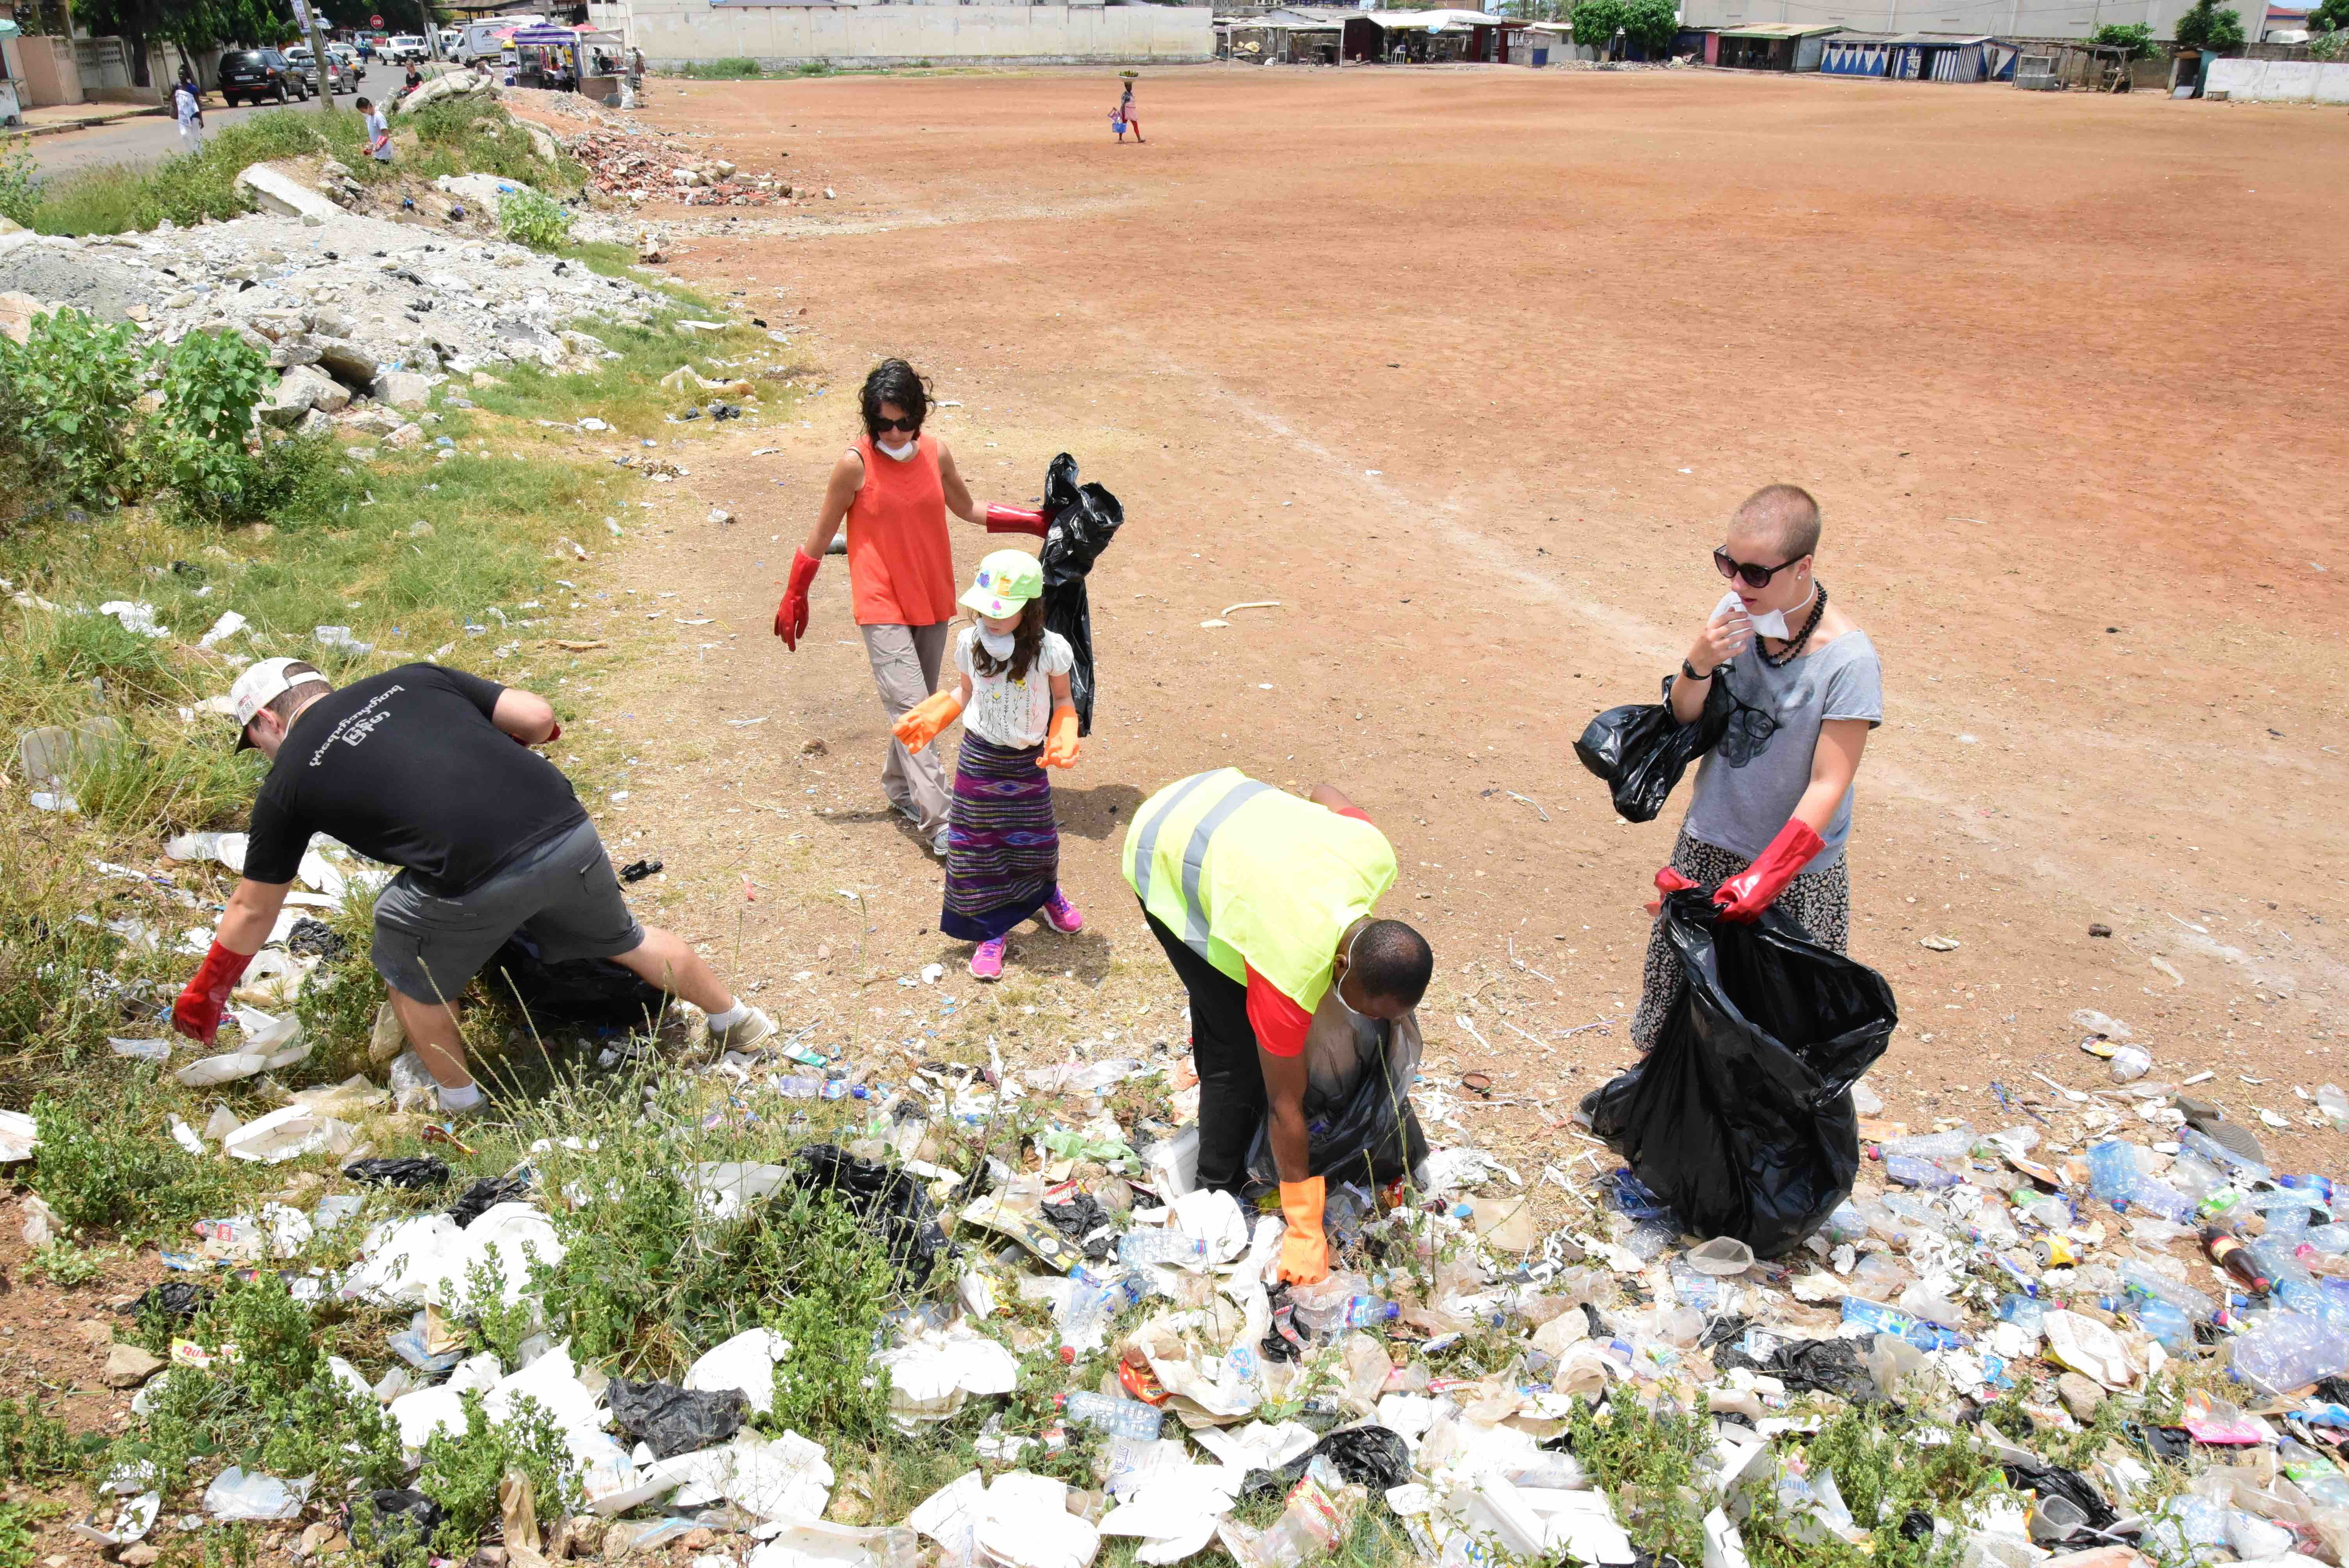 SAS students work to clean up a soccer field